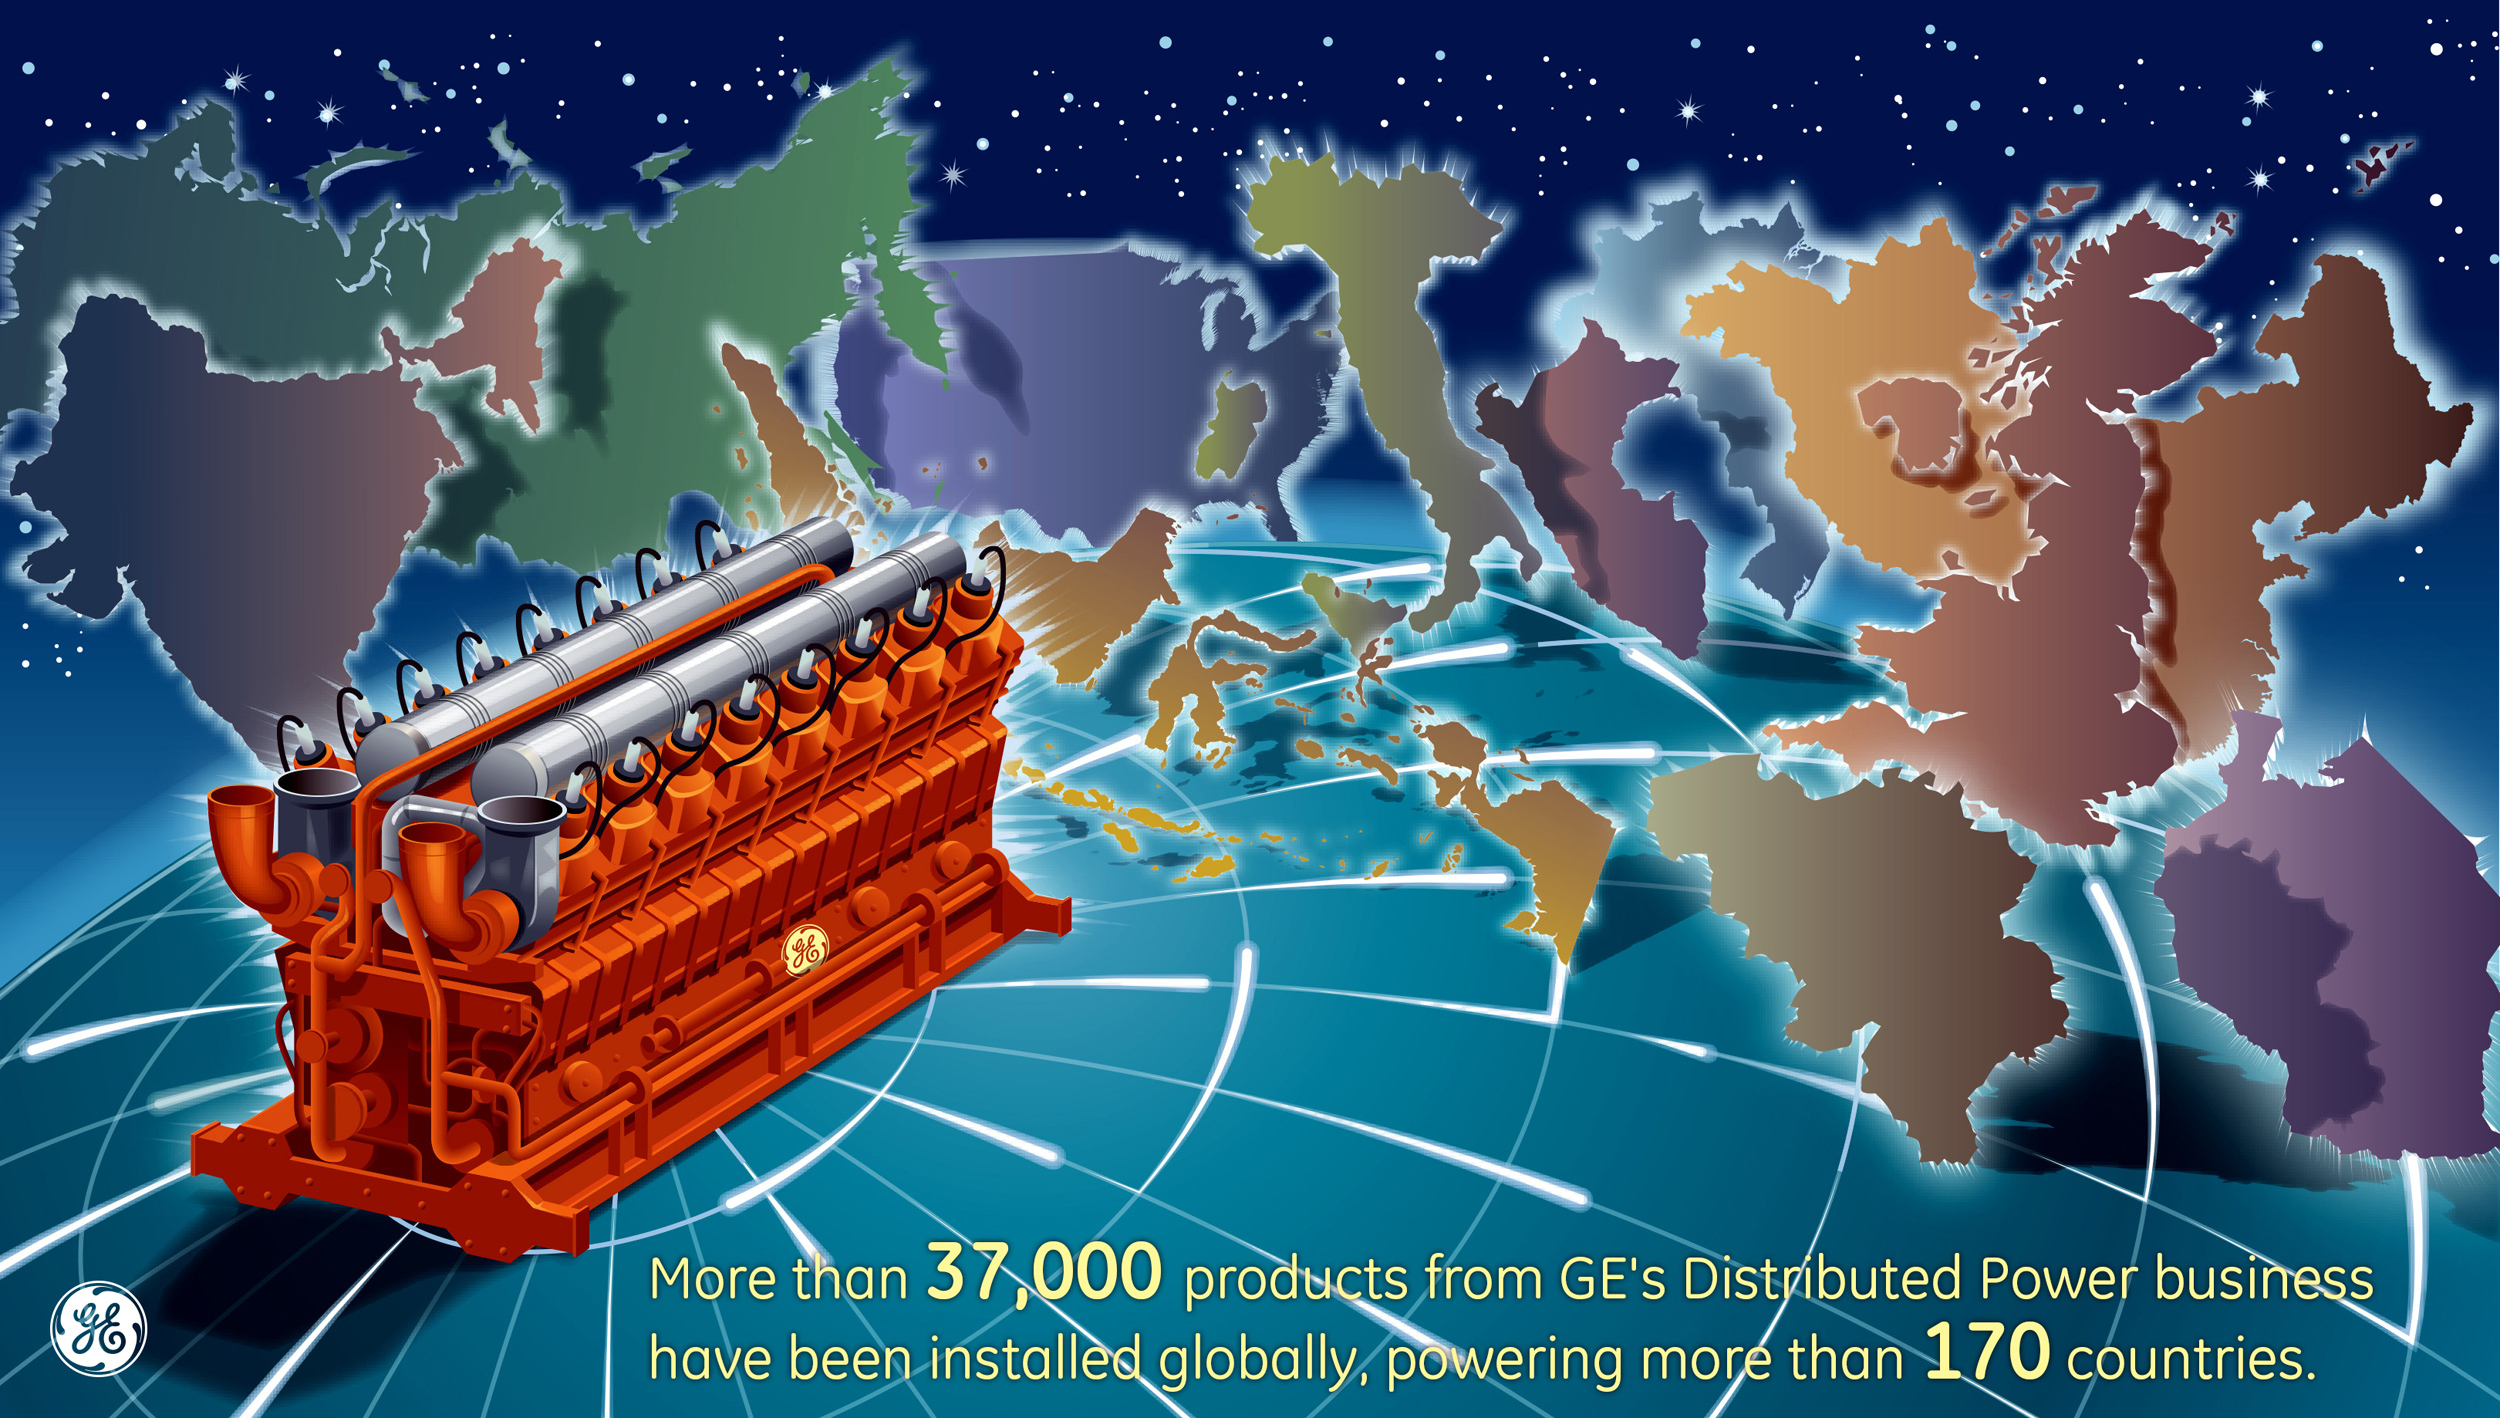 More than 37,000 products from GE's Distributed Power business have been installed globally, powering more than 170 countries. (Graphic: Business Wire)